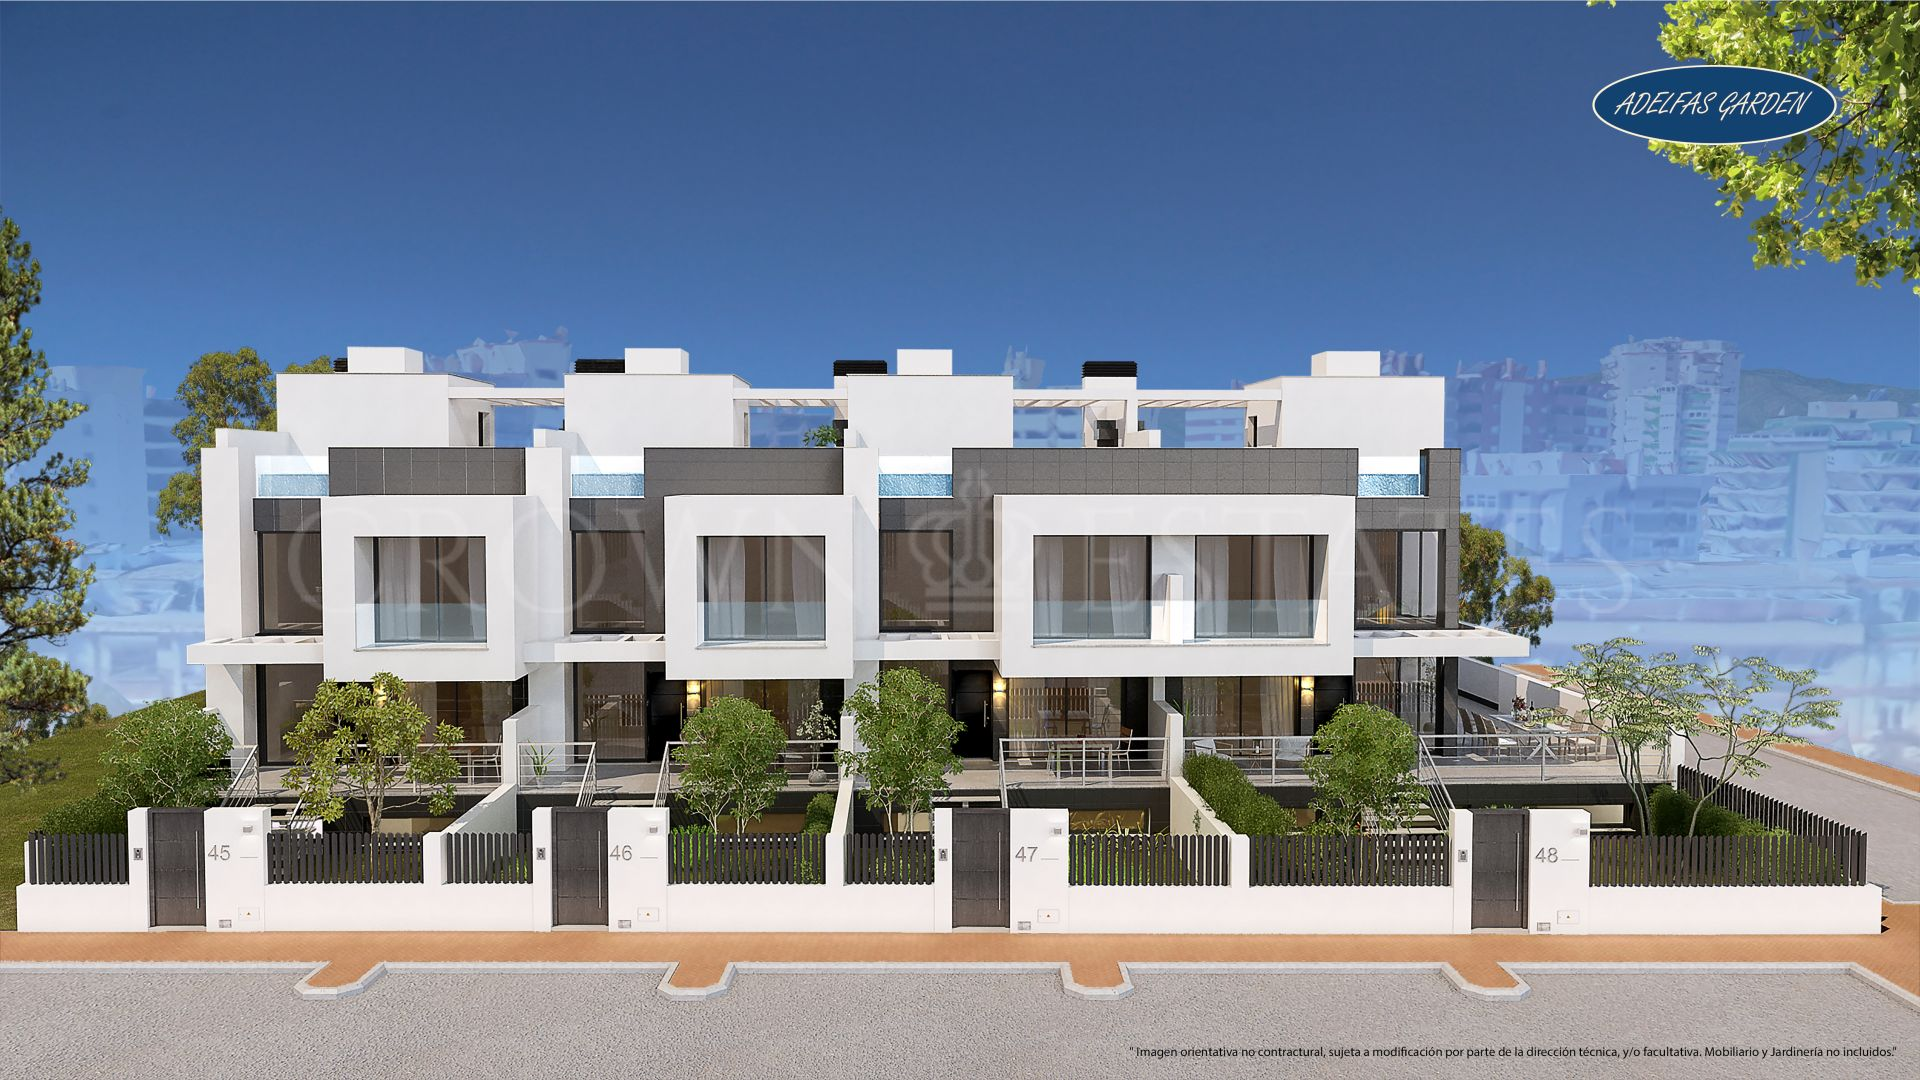 Adelfas Garden is a new boutique development of 4 unique single family townhouses in the center of Fuengirola and near the beach.